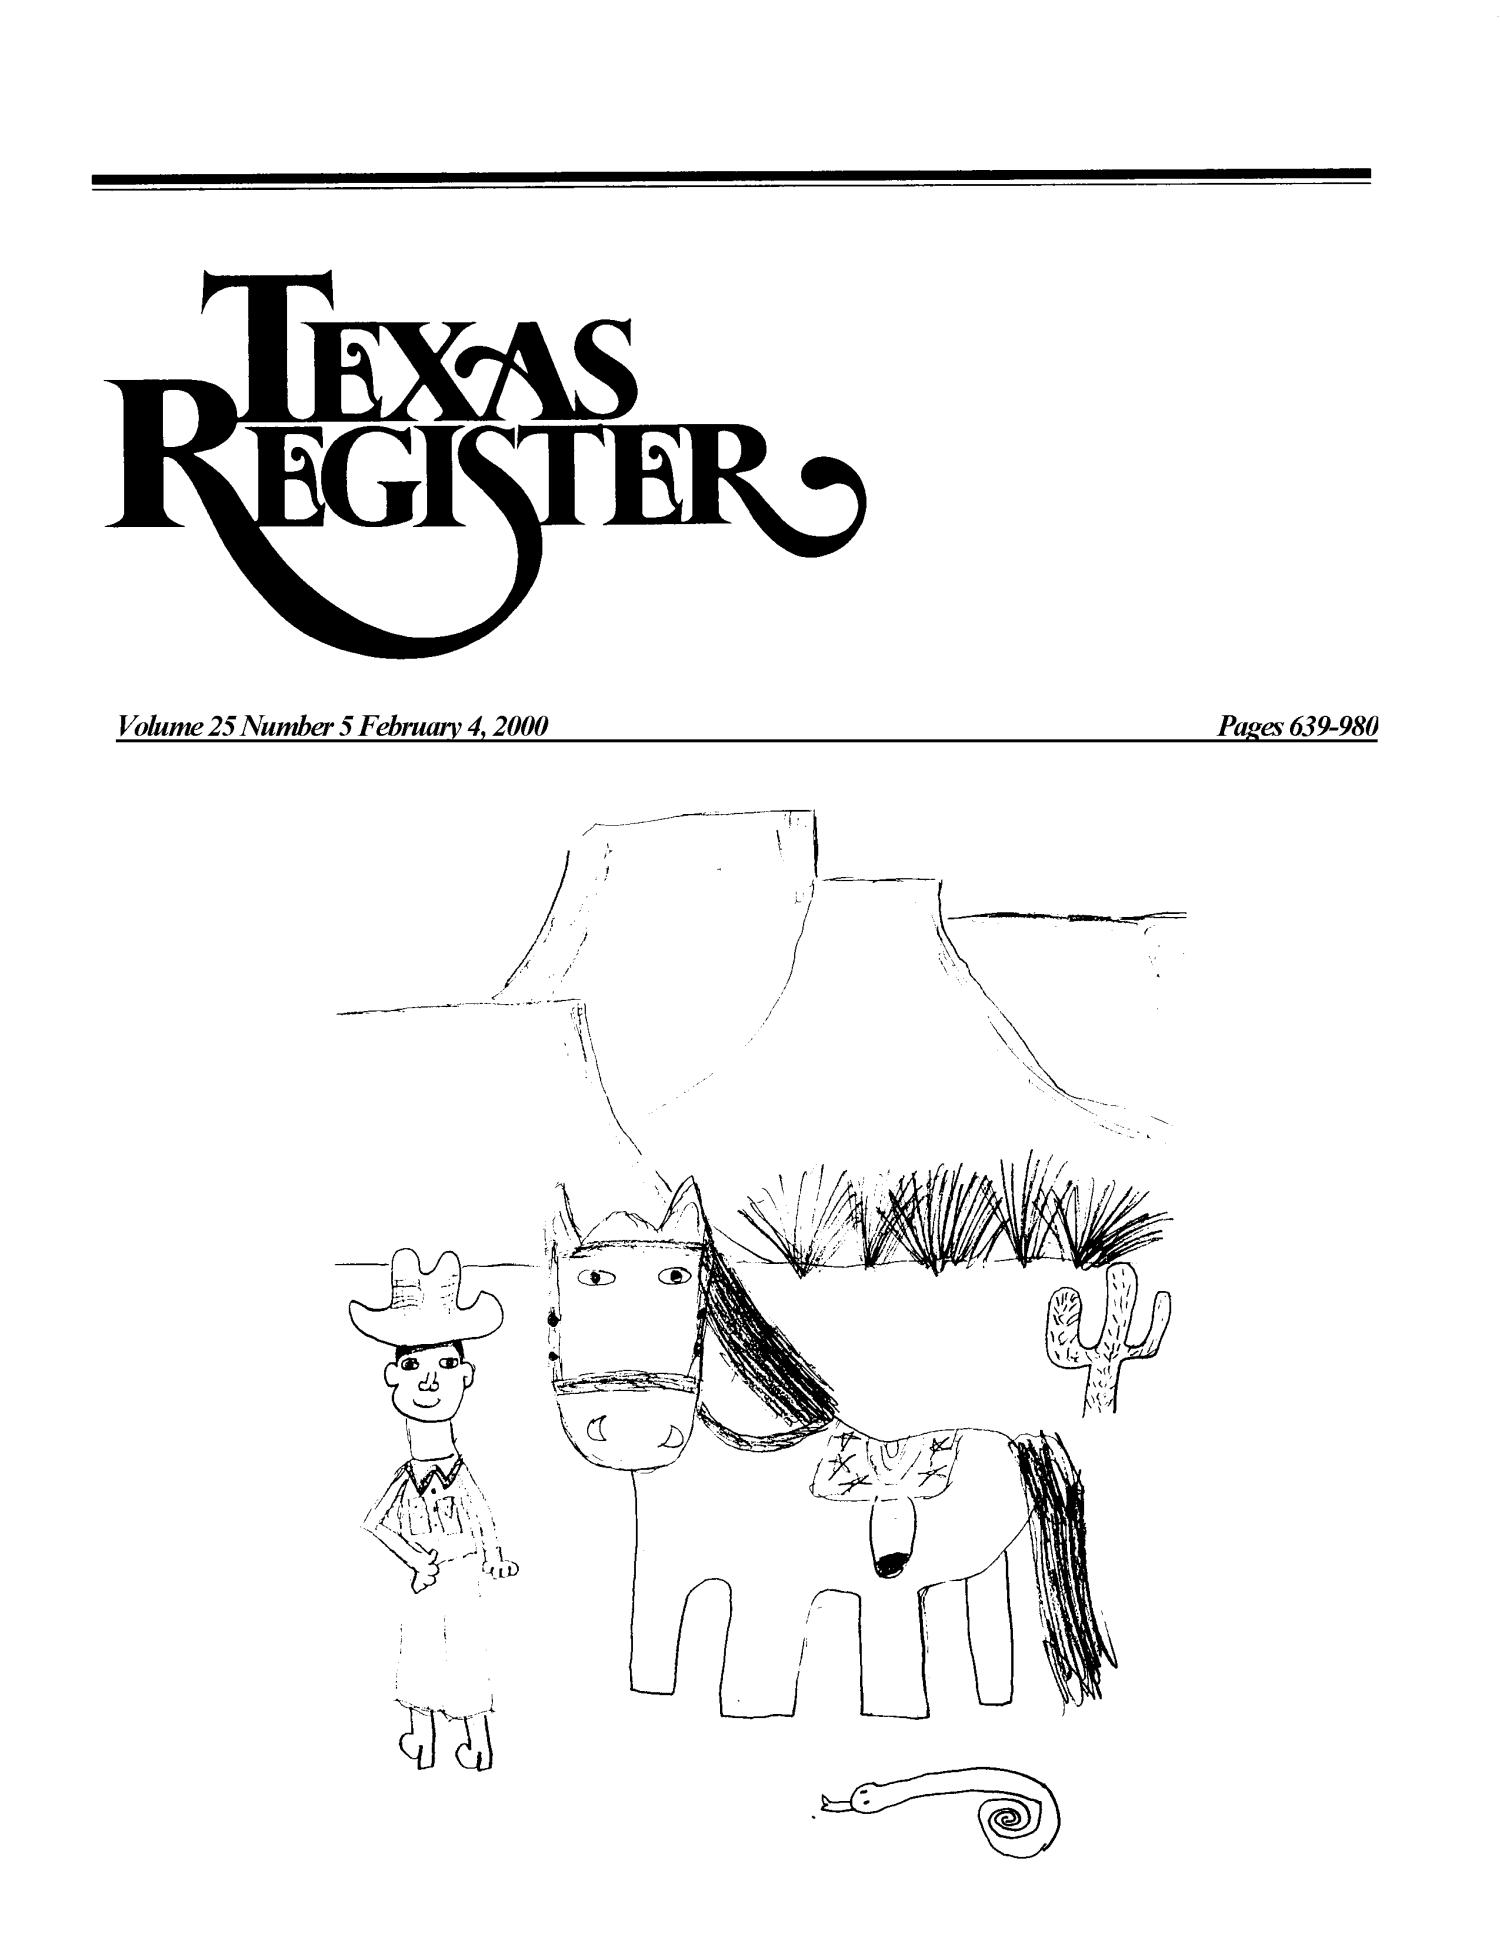 Texas Register, Volume 25, Number 5, Pages 639-980